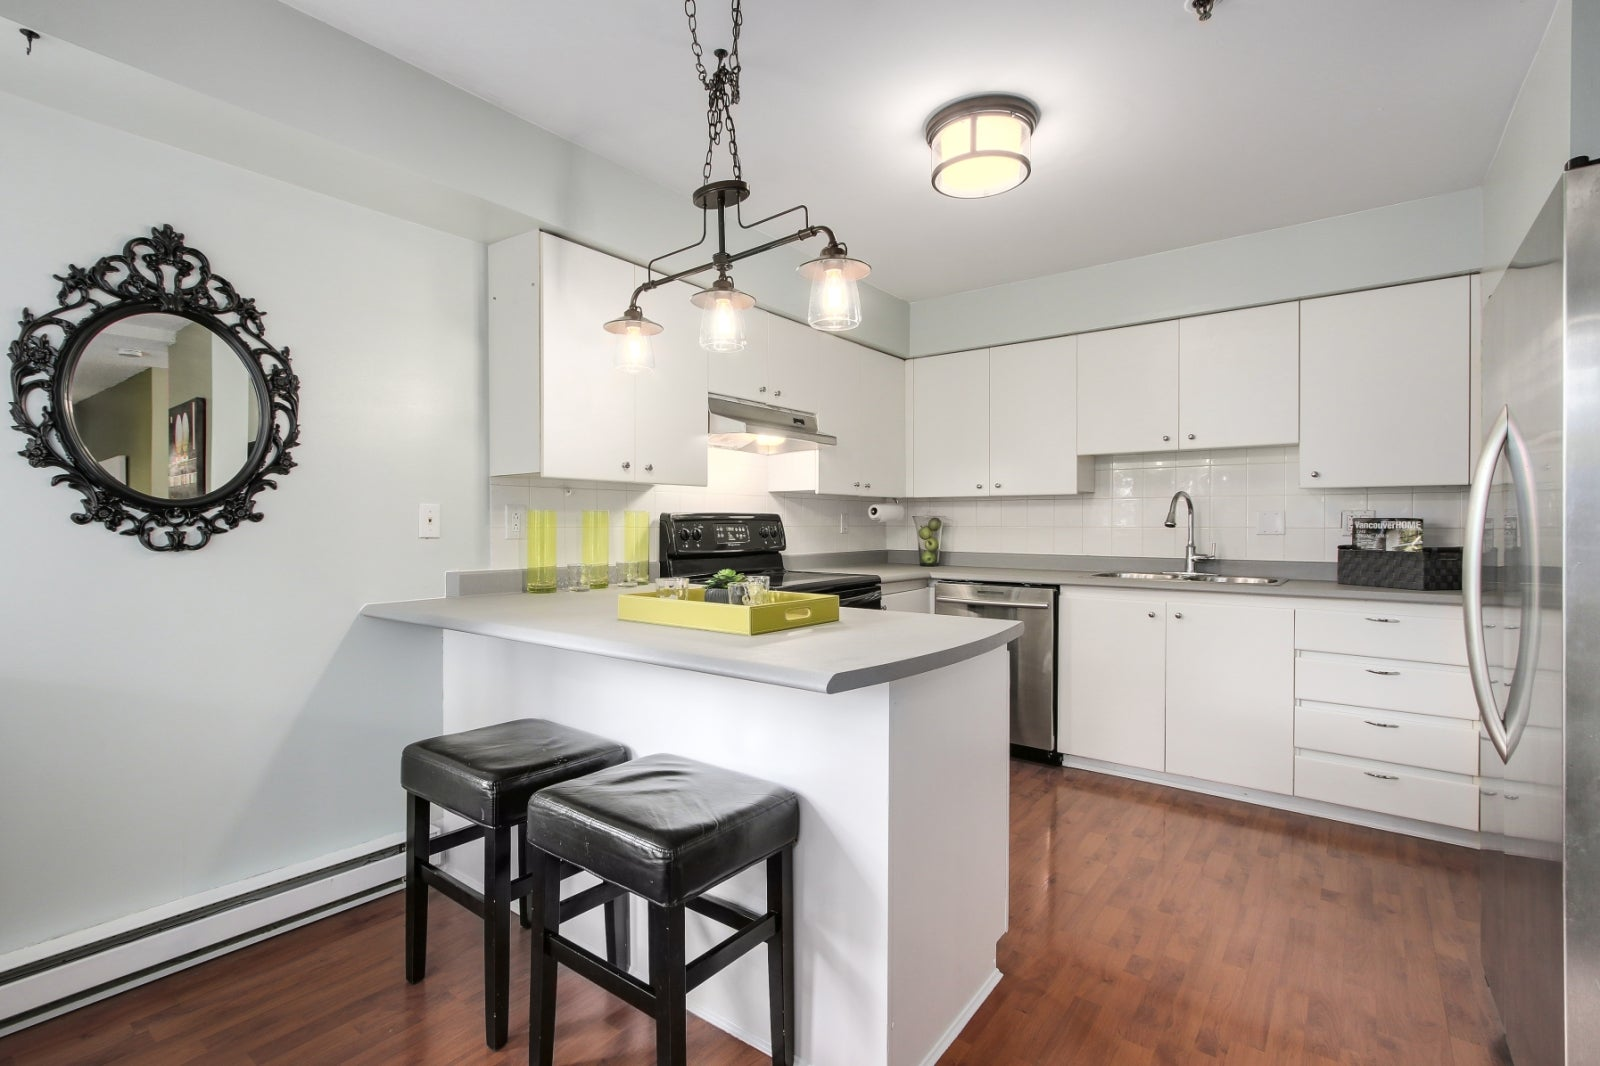 9 7345 SANDBORNE AVENUE - South Slope Townhouse for sale, 2 Bedrooms (R2165161) #8